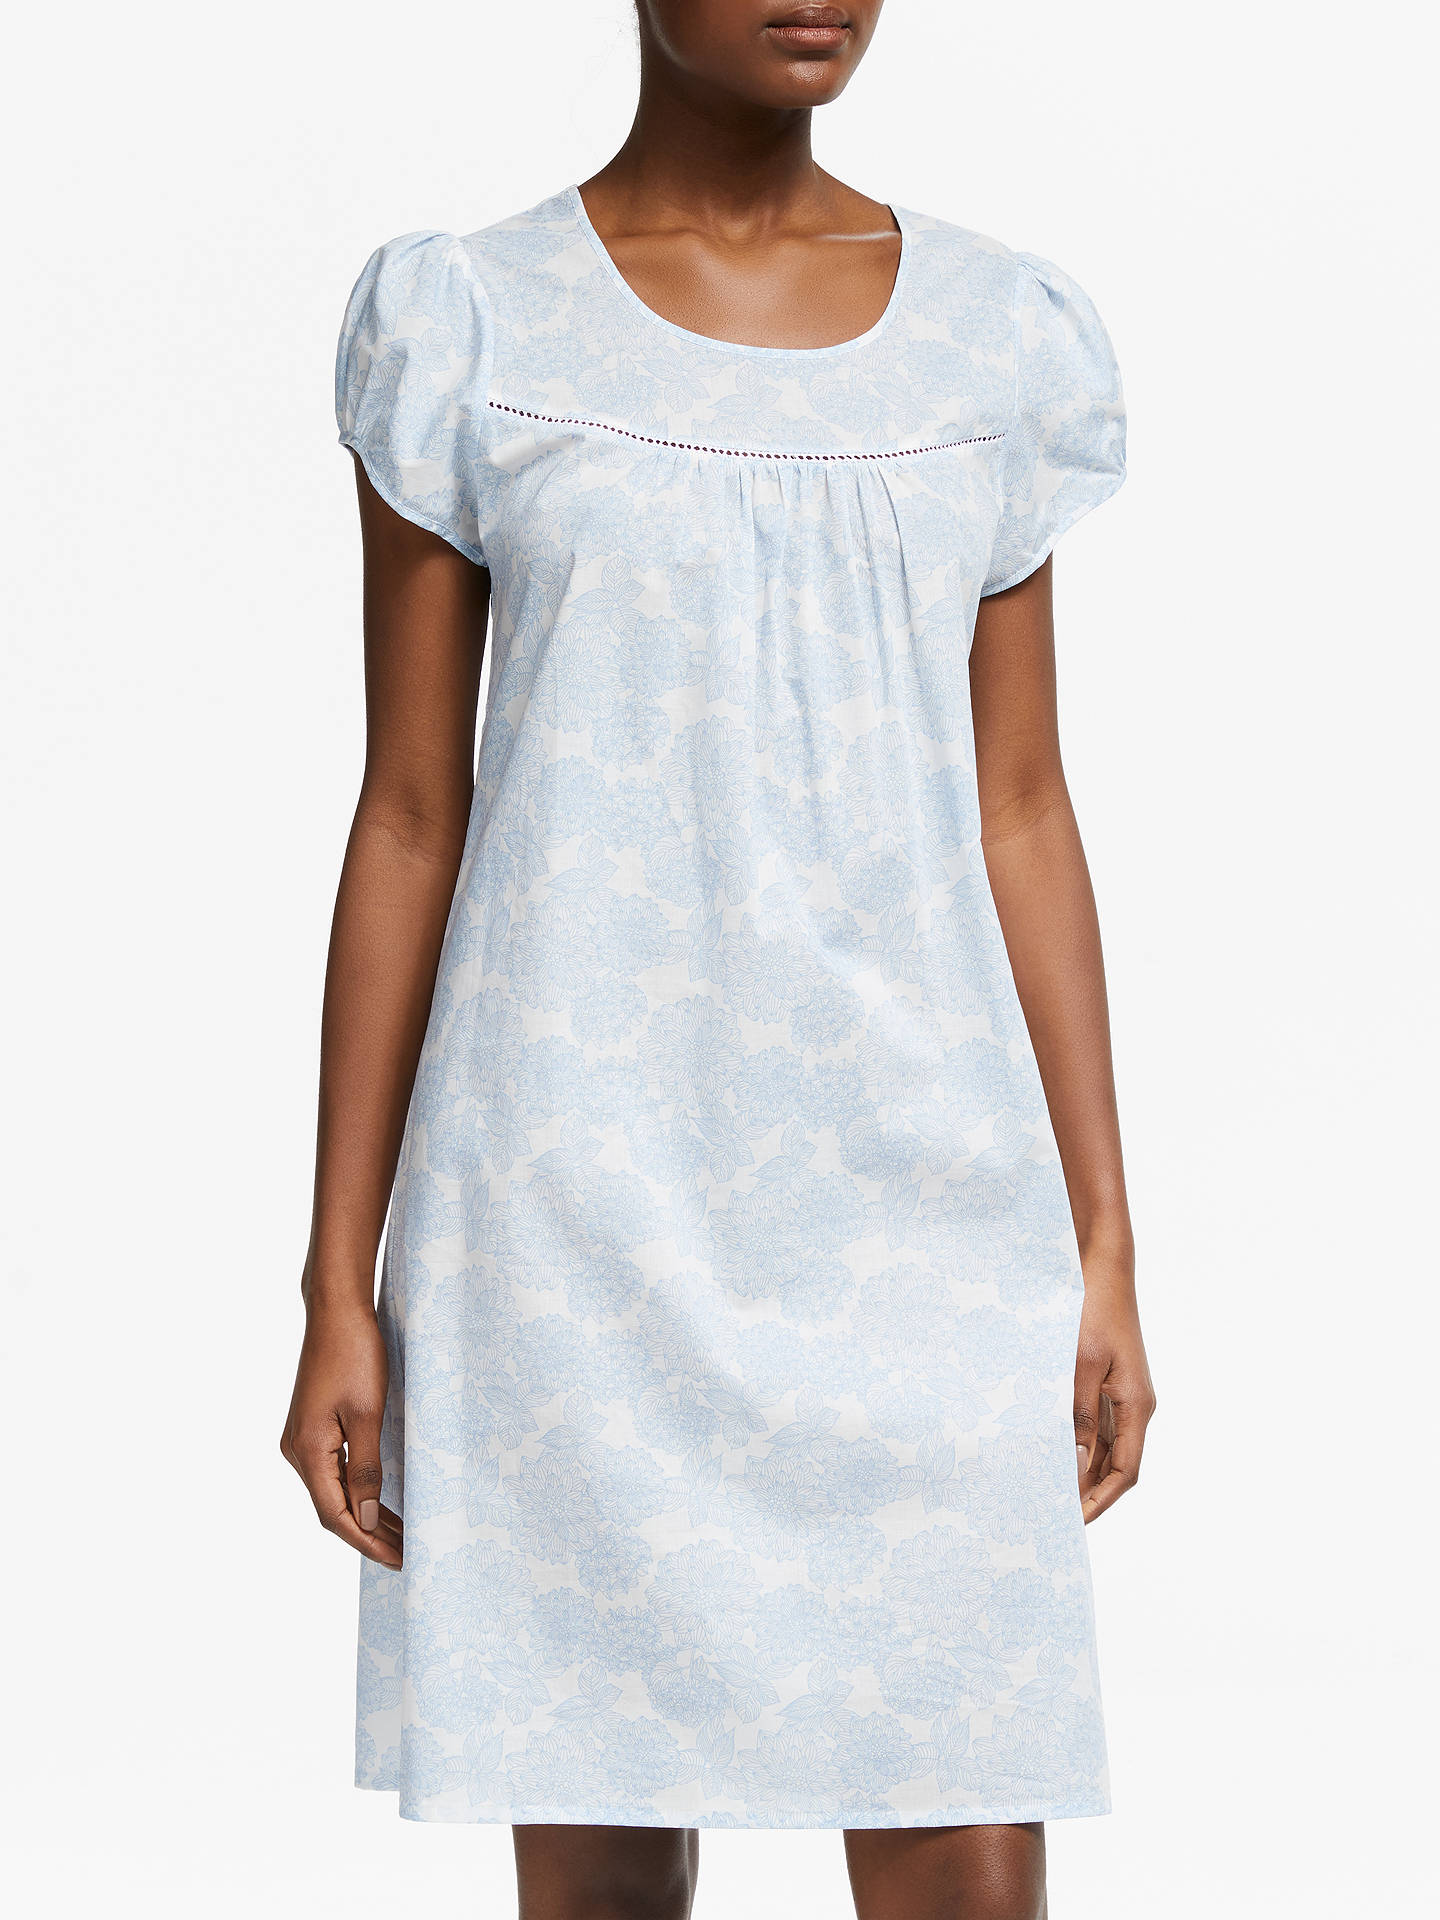 a68d4b9d42 Buy John Lewis & Partners Zoe Floral Print Short Sleeve Cotton Nightdress,  White/Blue ...